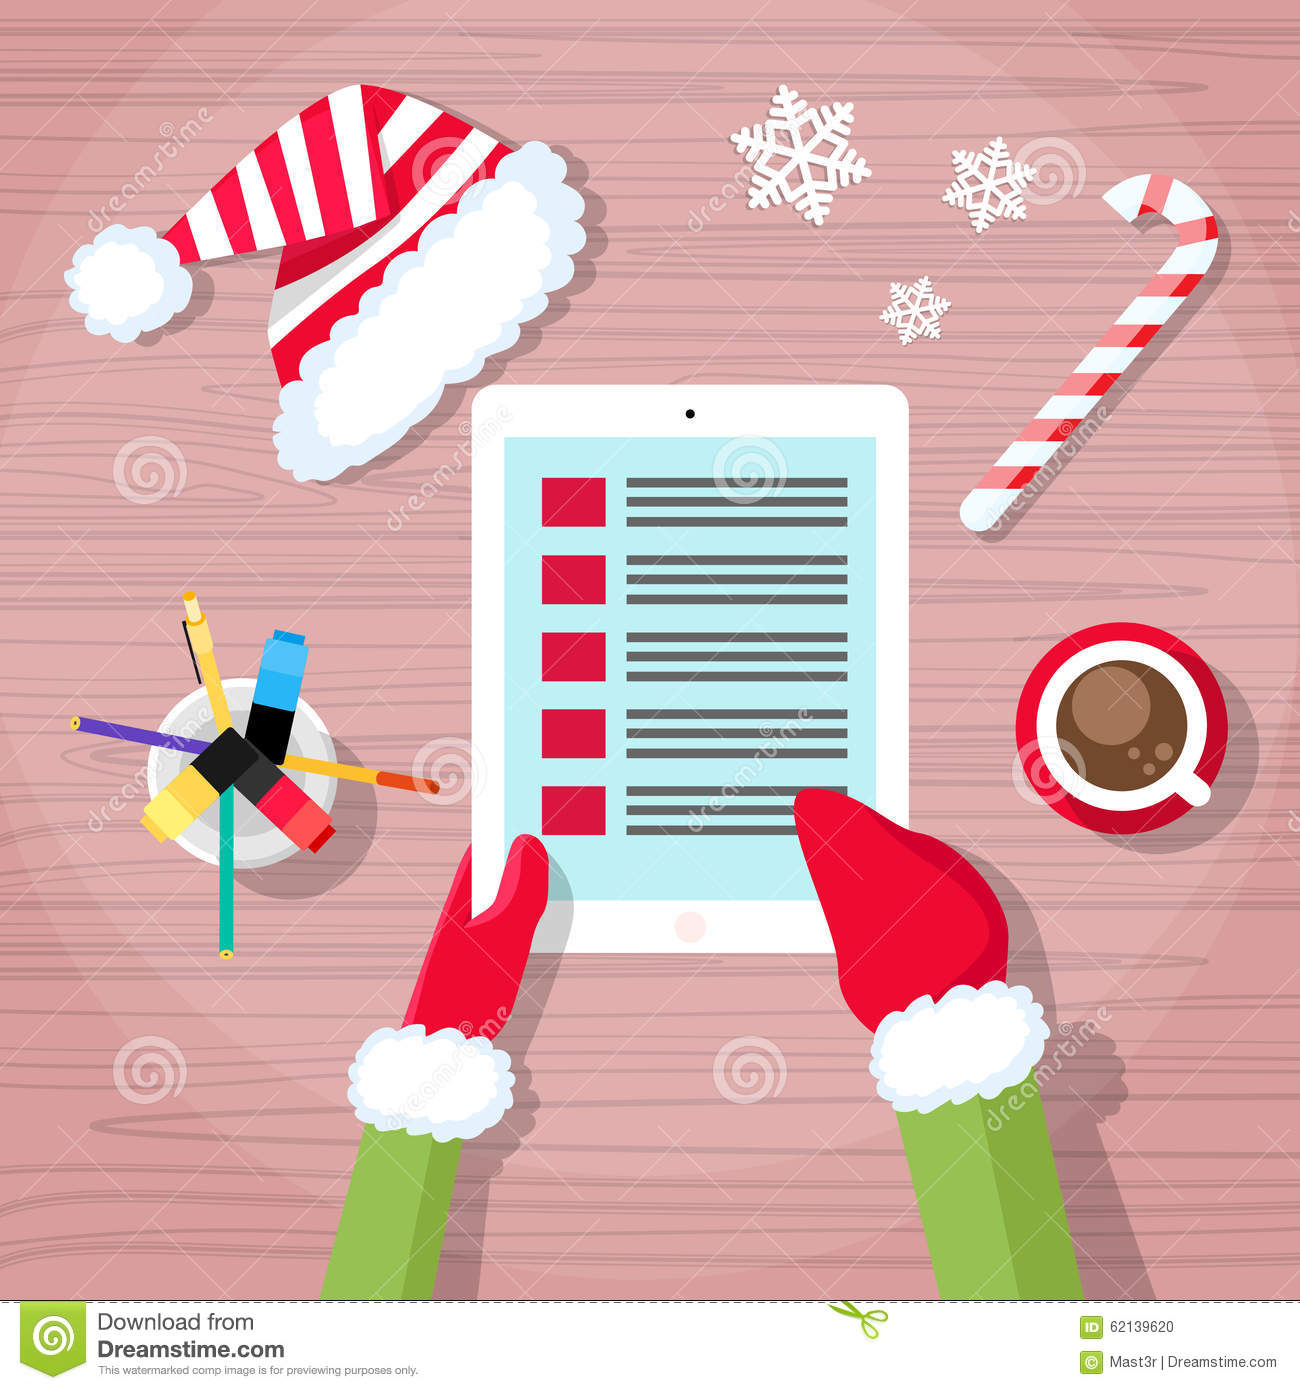 """an essay on your wishlist for christmas Beginning monday, """"a christmas story""""-themed window will be on display in   submit an essay about your wish list — just like the one miss."""